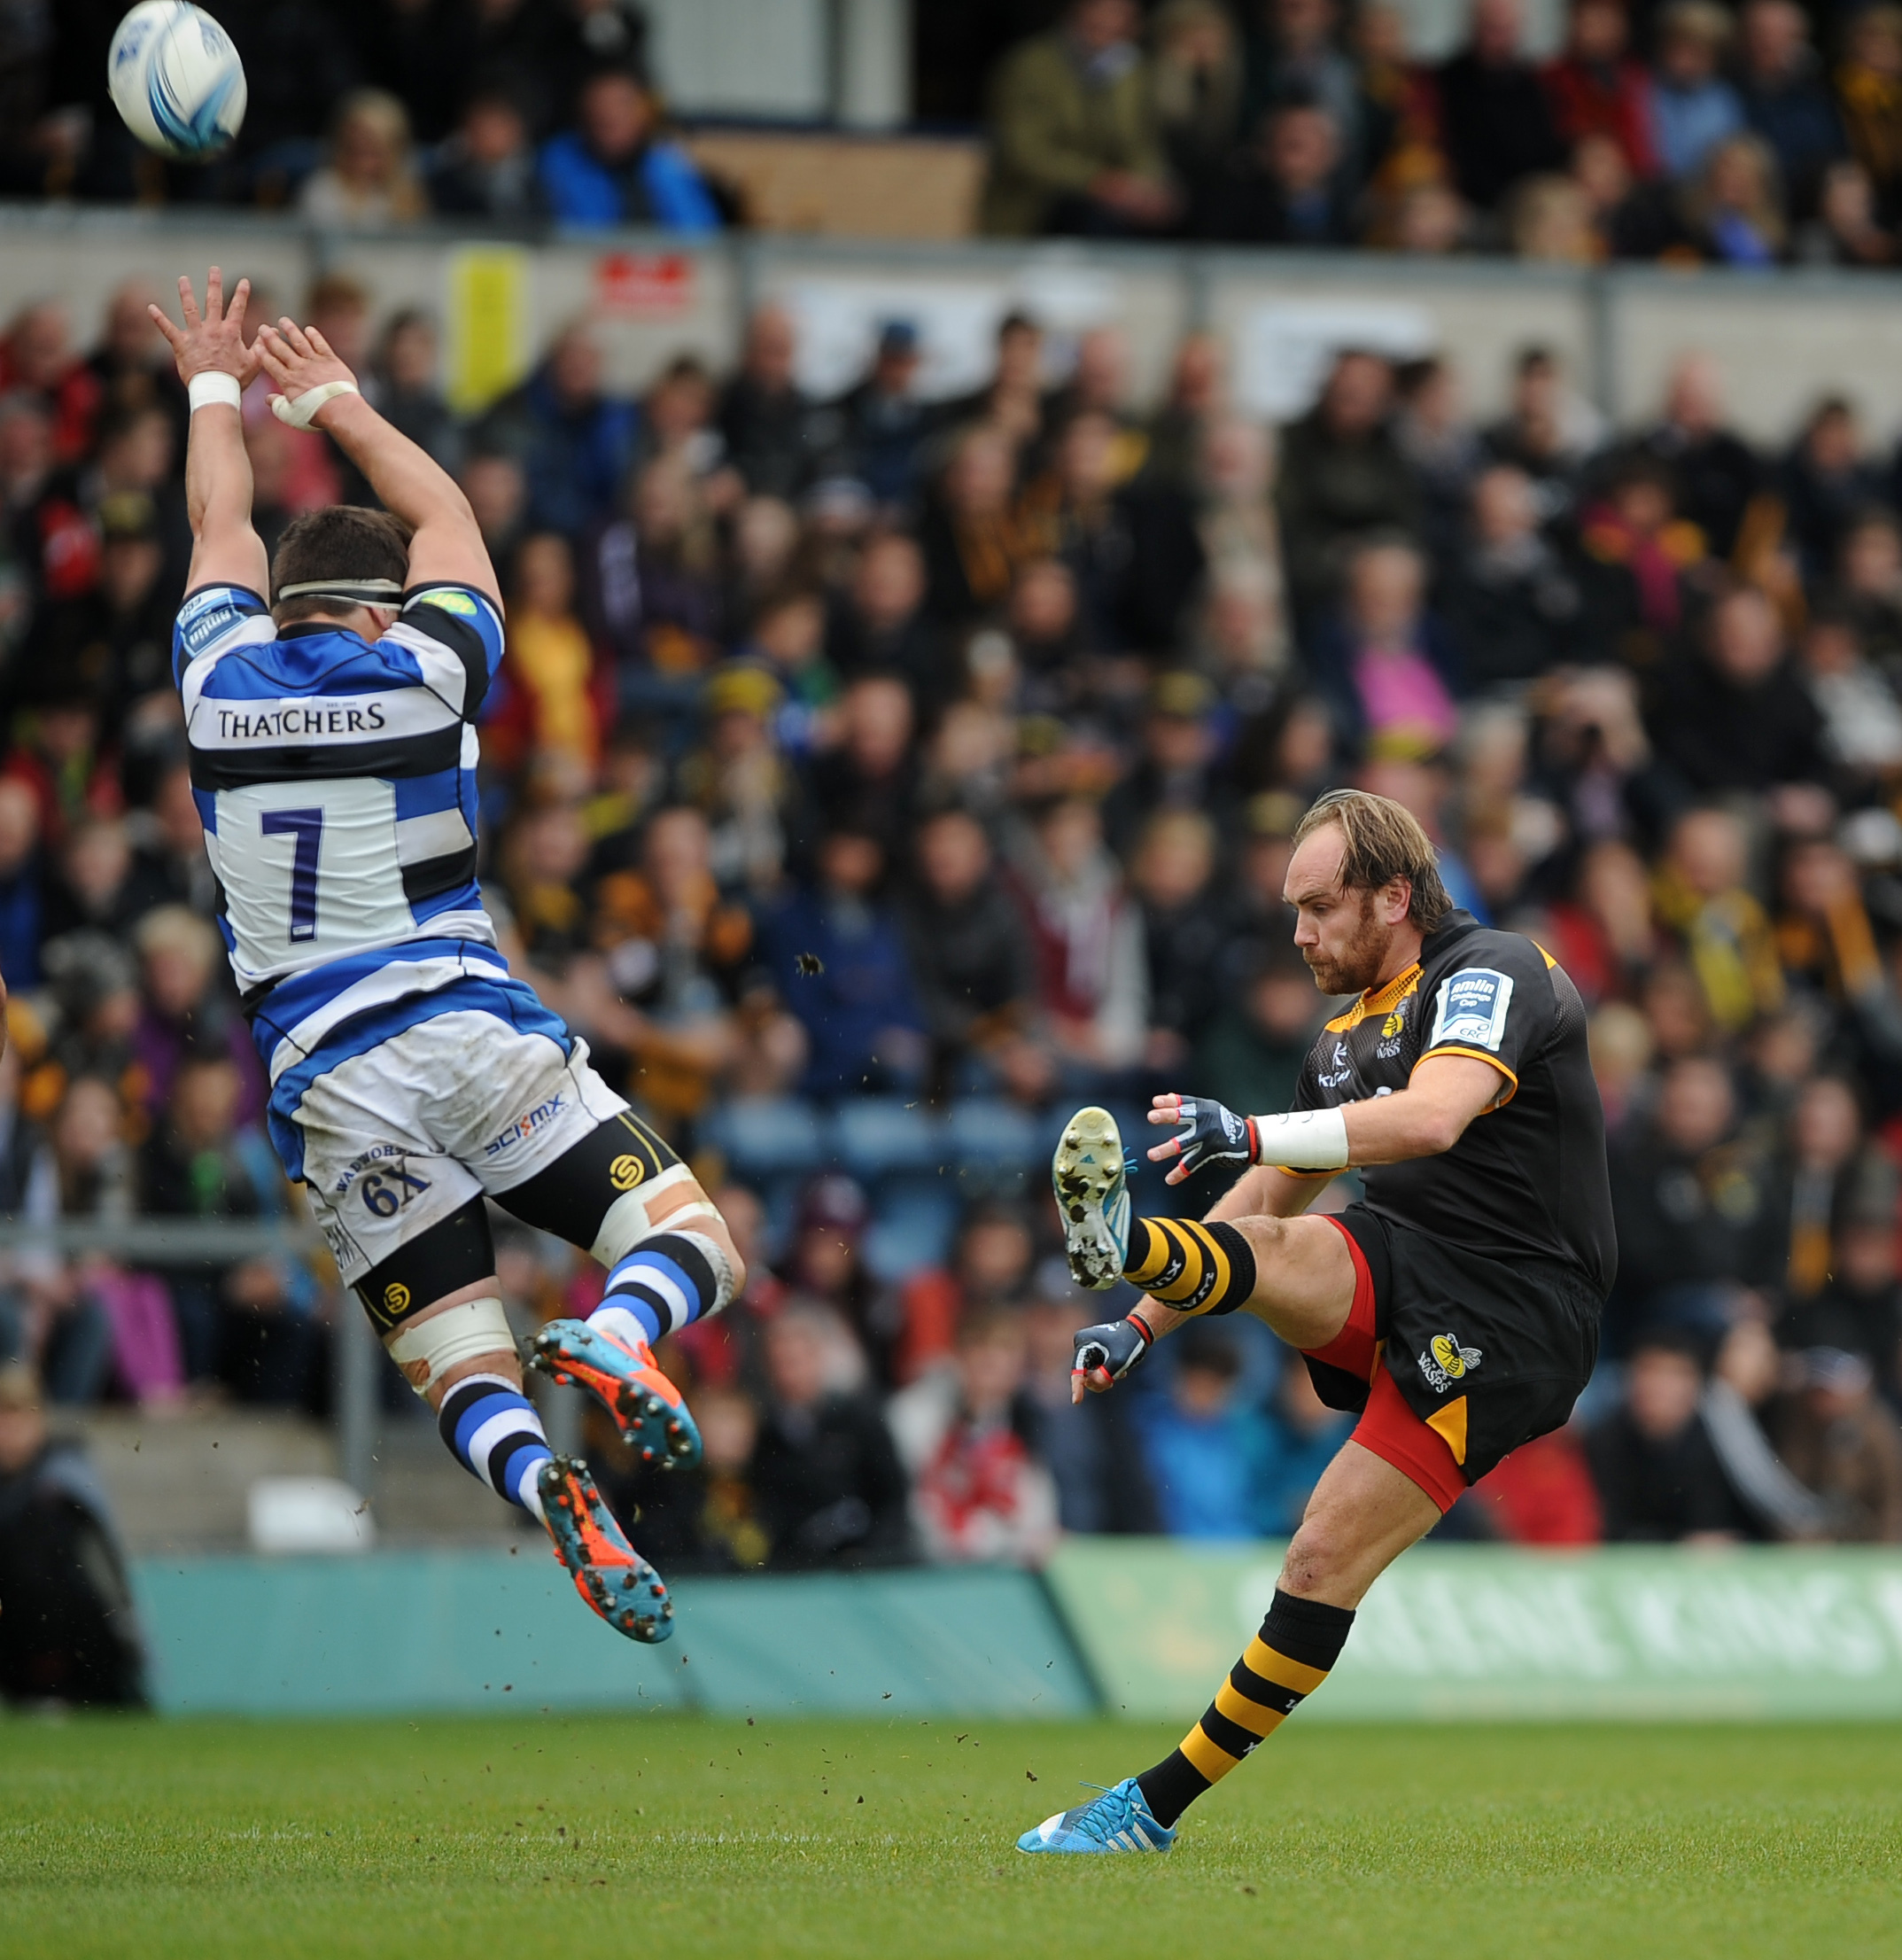 MARQUEE PLAYER: Former Worcester Warriors fly-half Andy Goode in action for new club Wasps.